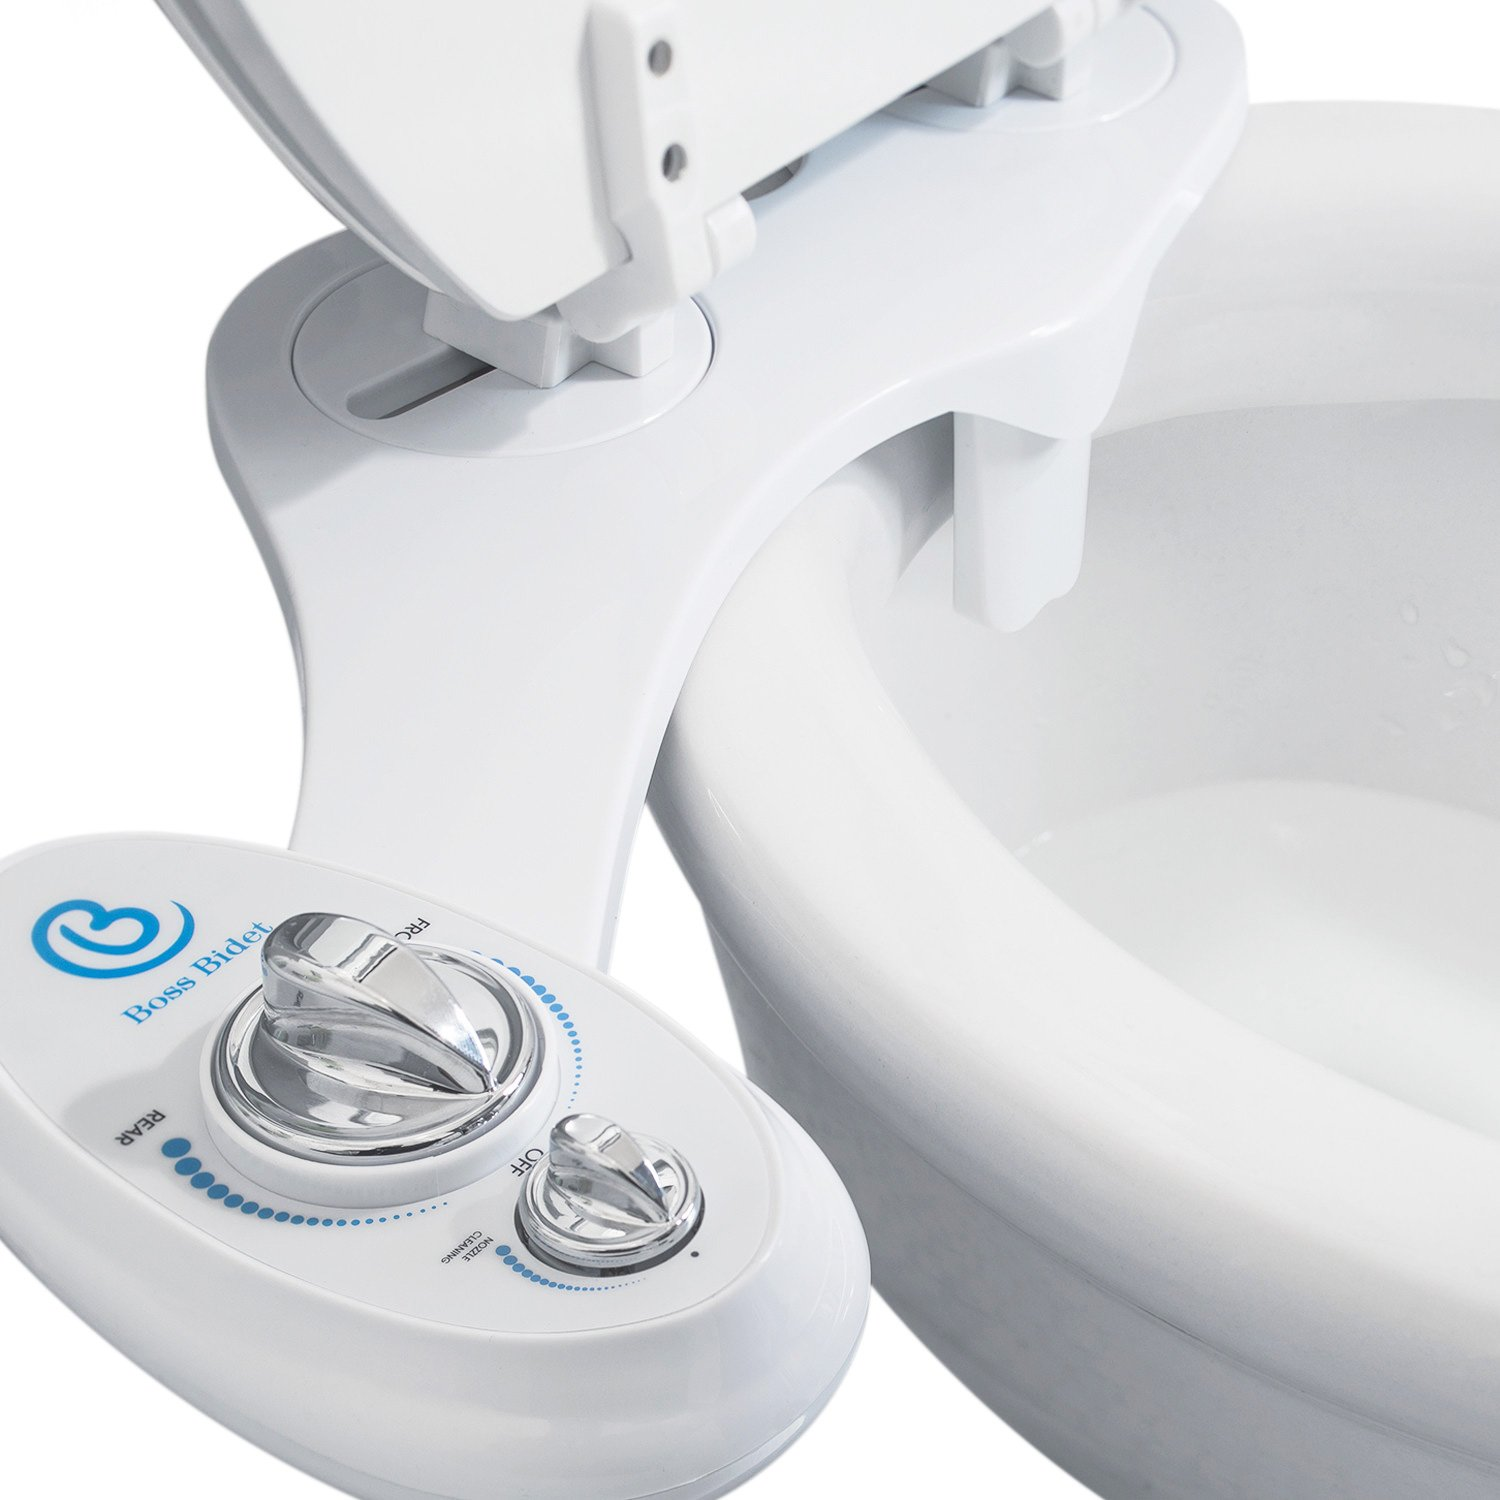 BOSS BIDET Toilet Attachment | Cleans Your Rear | 2 Year Warranty | Dual Nozzle | 30 Day Guarantee | Self Cleaning Feature | Sprayer - Luxury Black & White